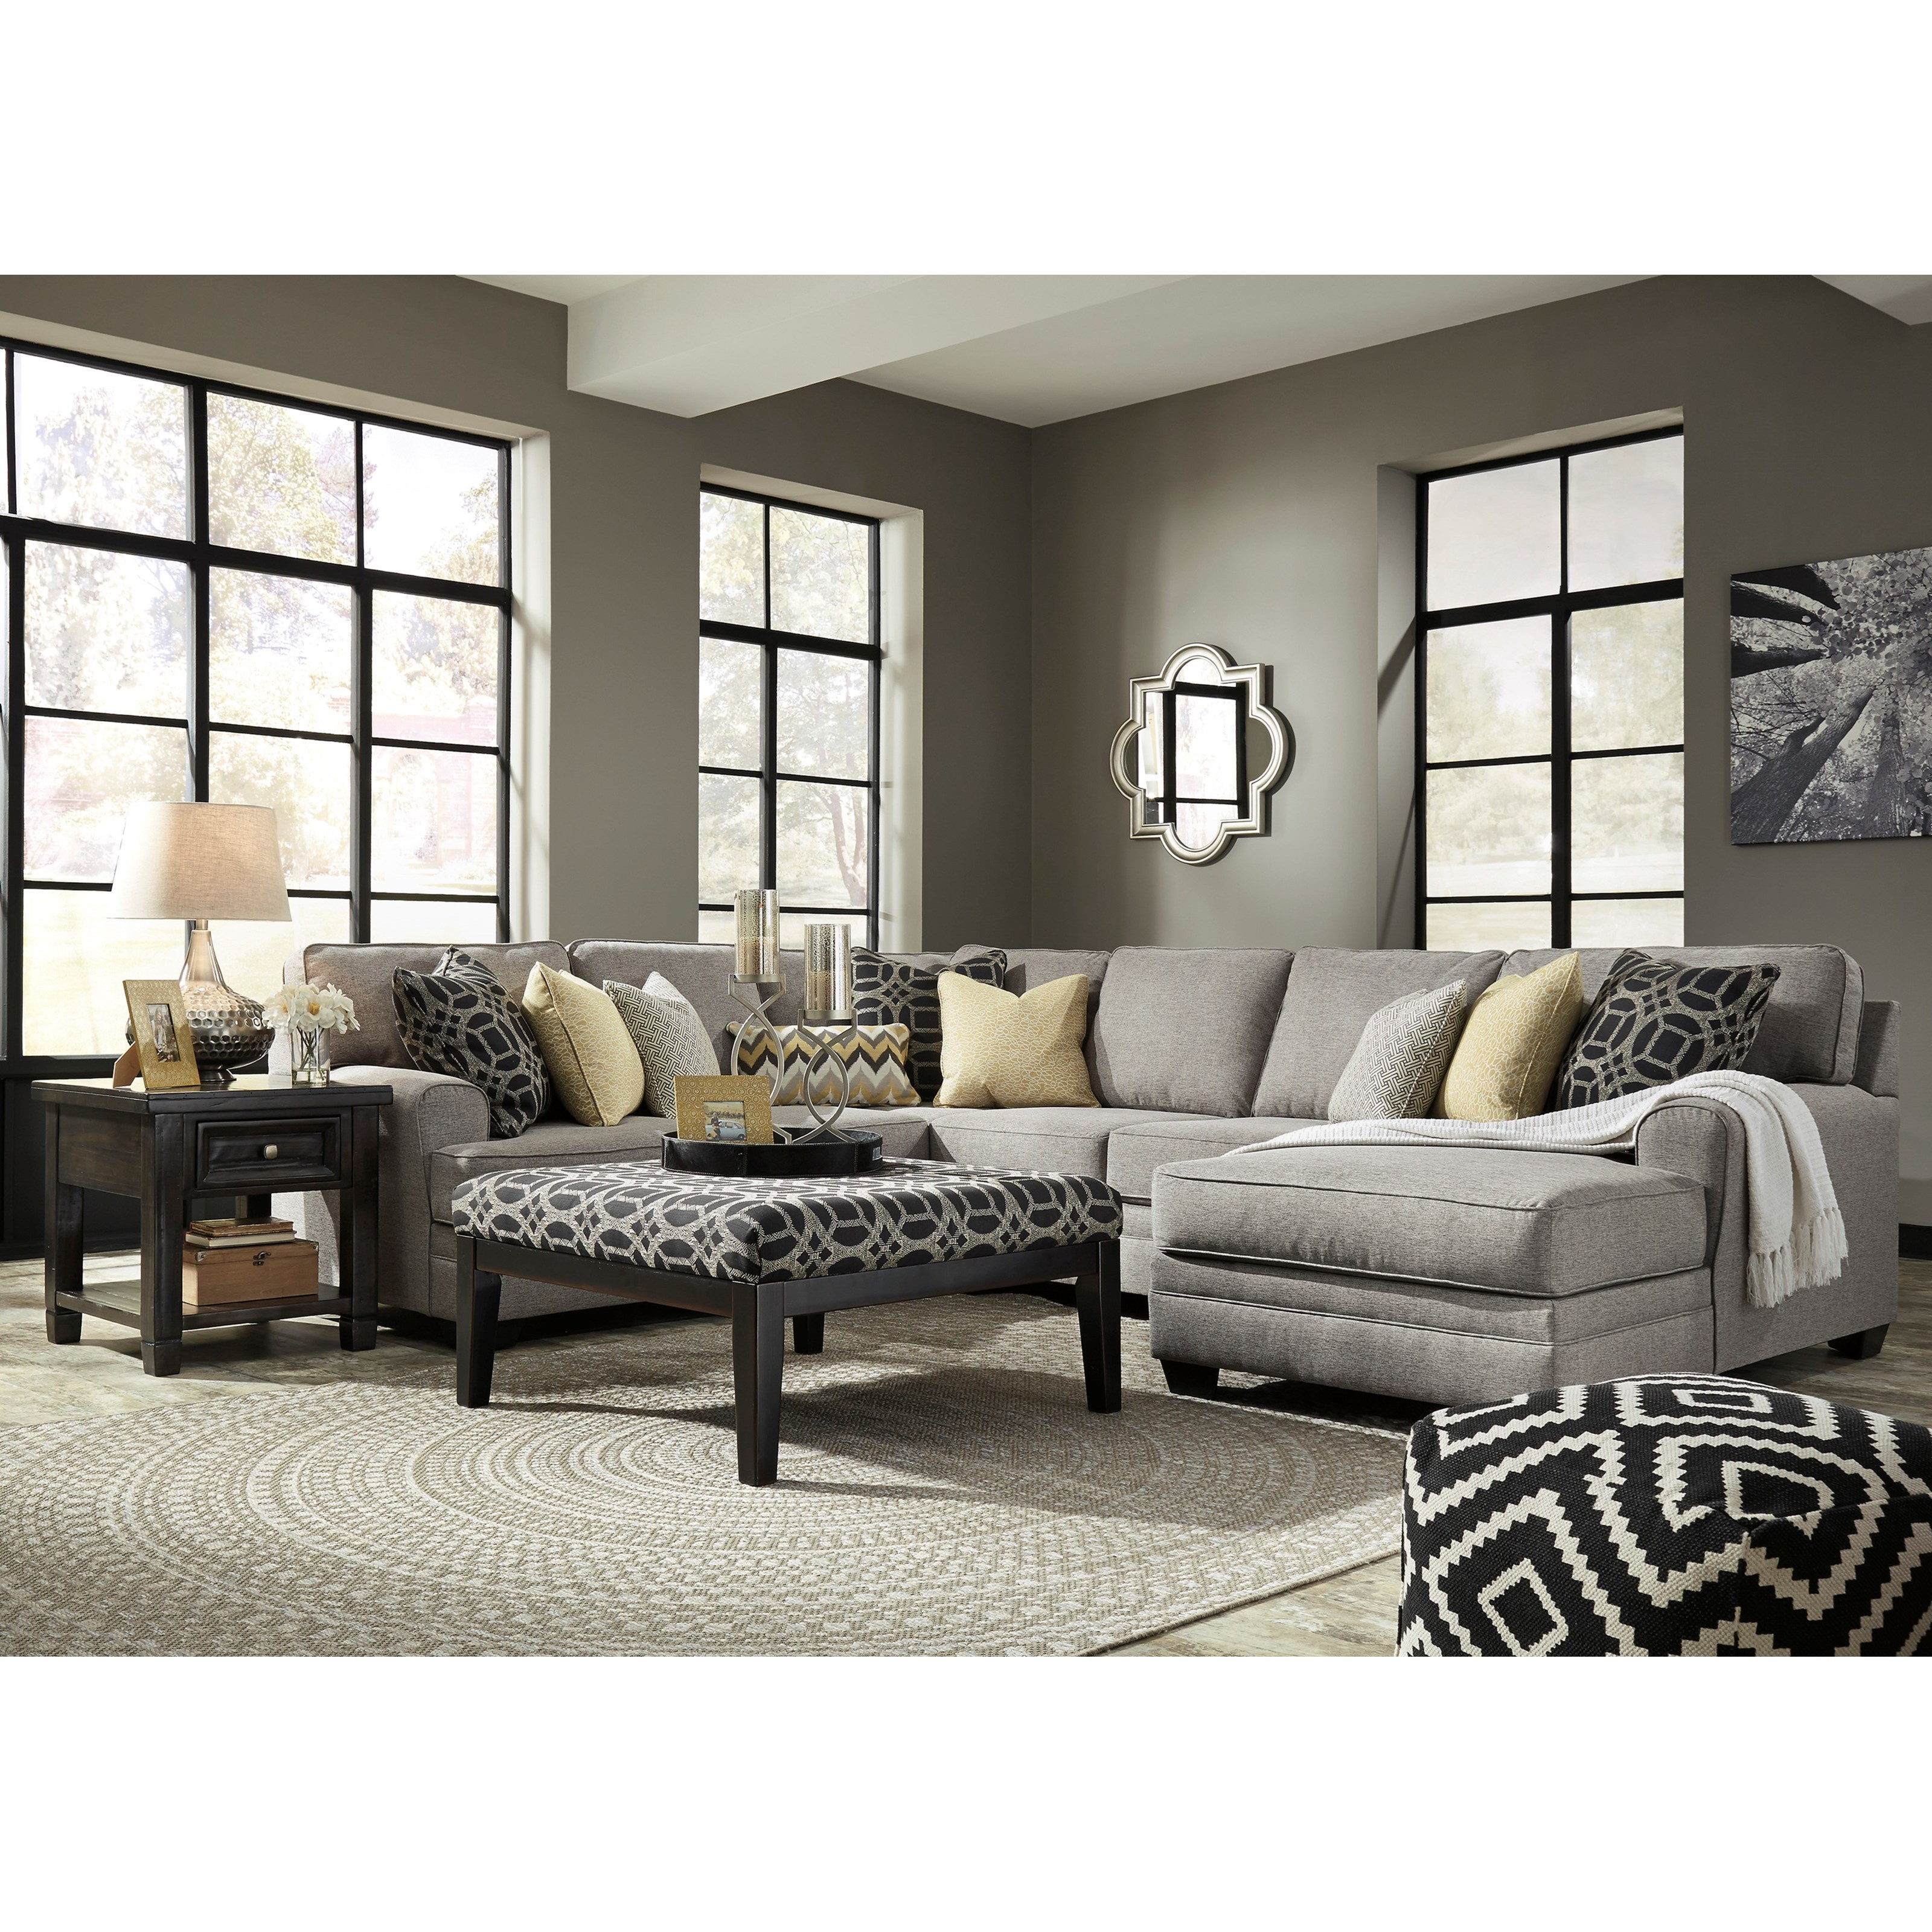 Benchcraft Cresson Stationary Living Room Group - Item Number: 54907 Living Room Group 3